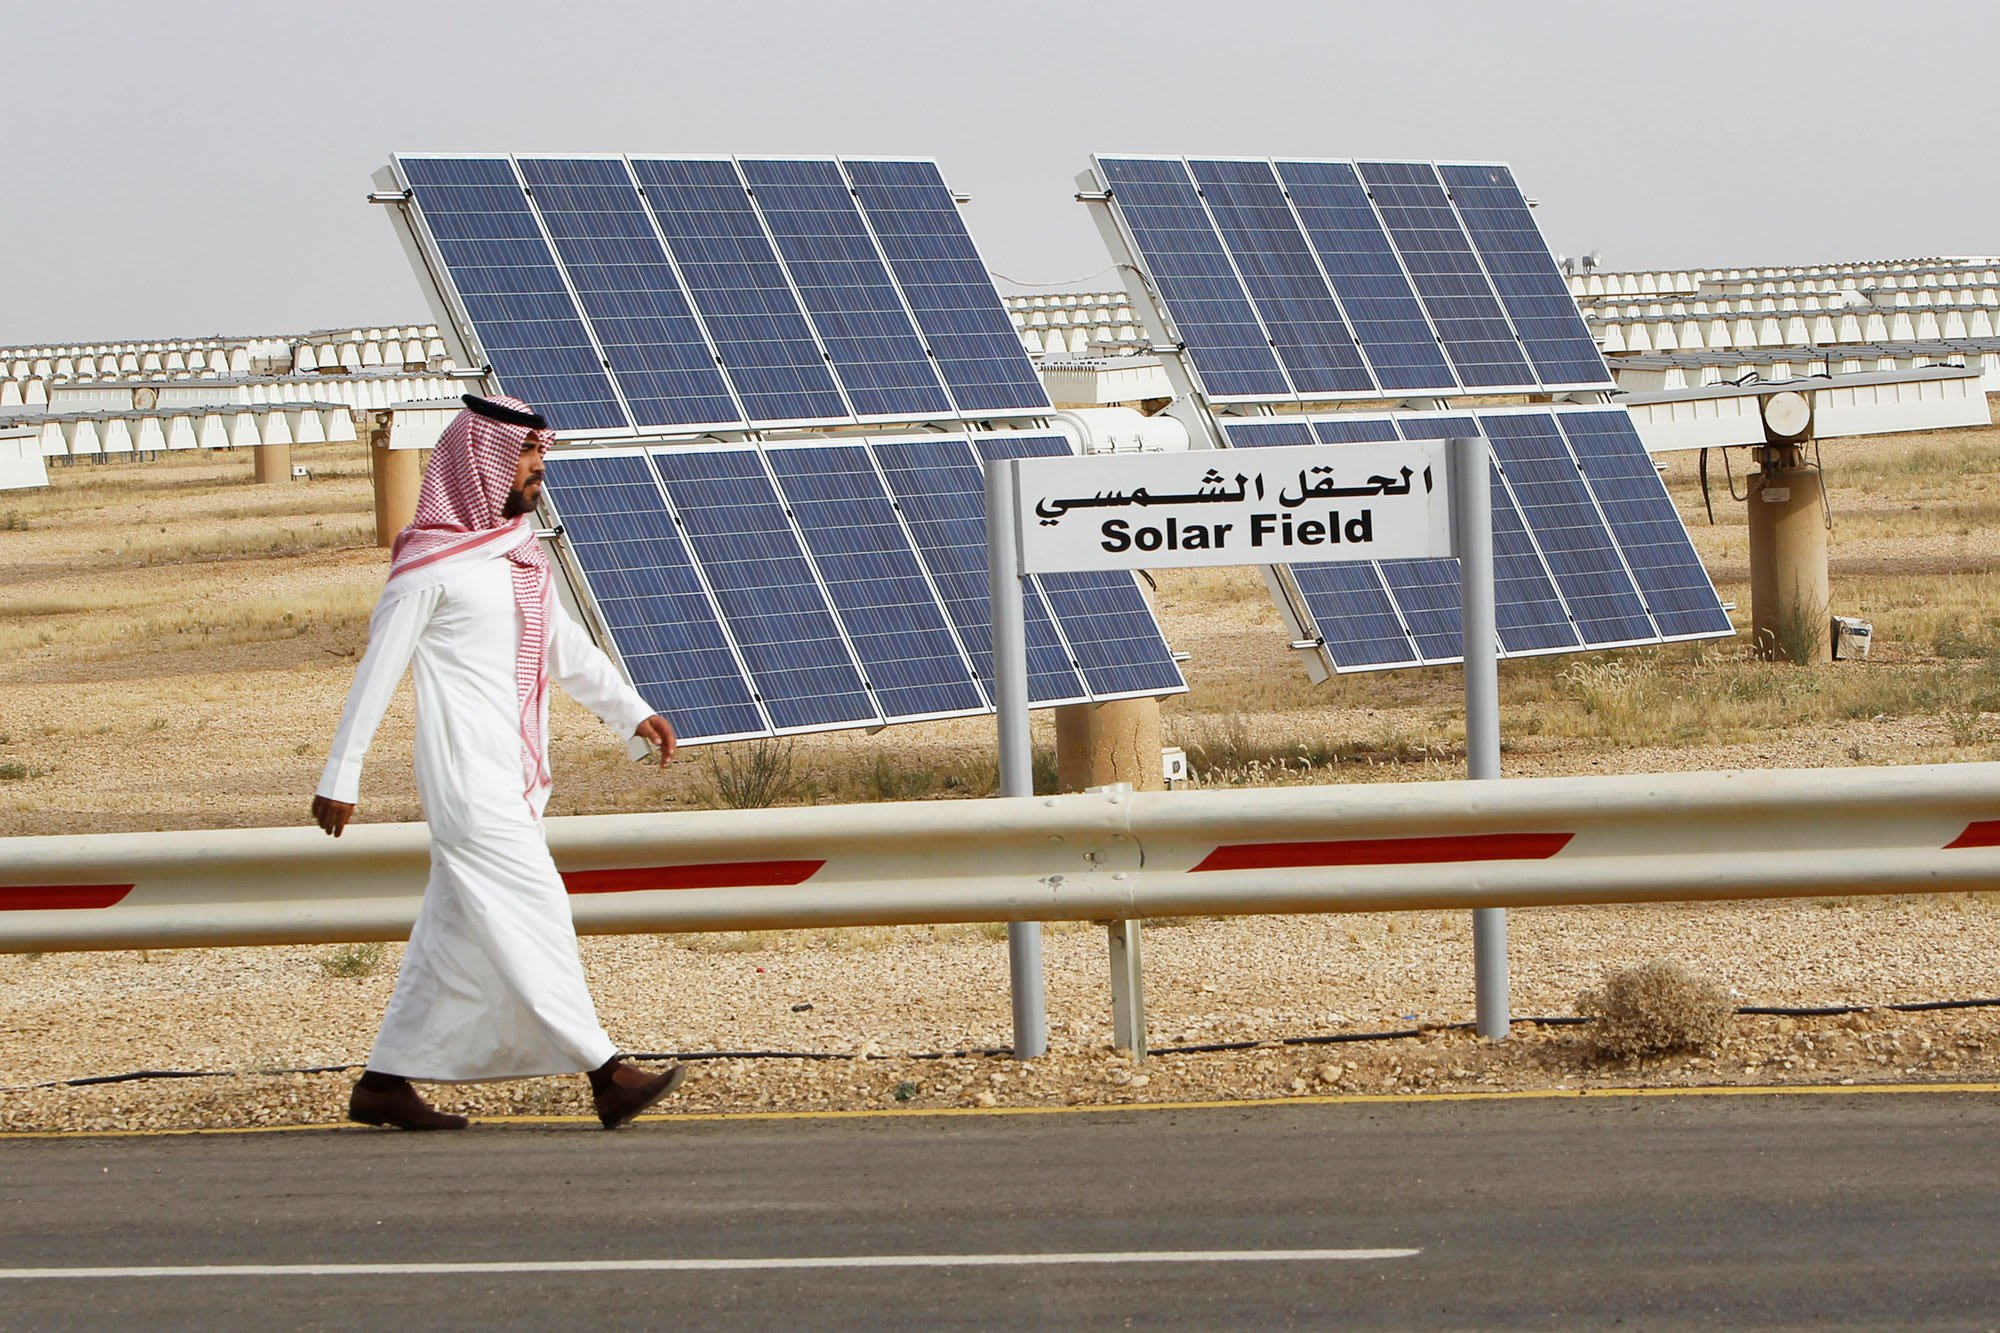 Saudi Arabia Vision 2030: Solar energy can complement, not rival, oil and gas